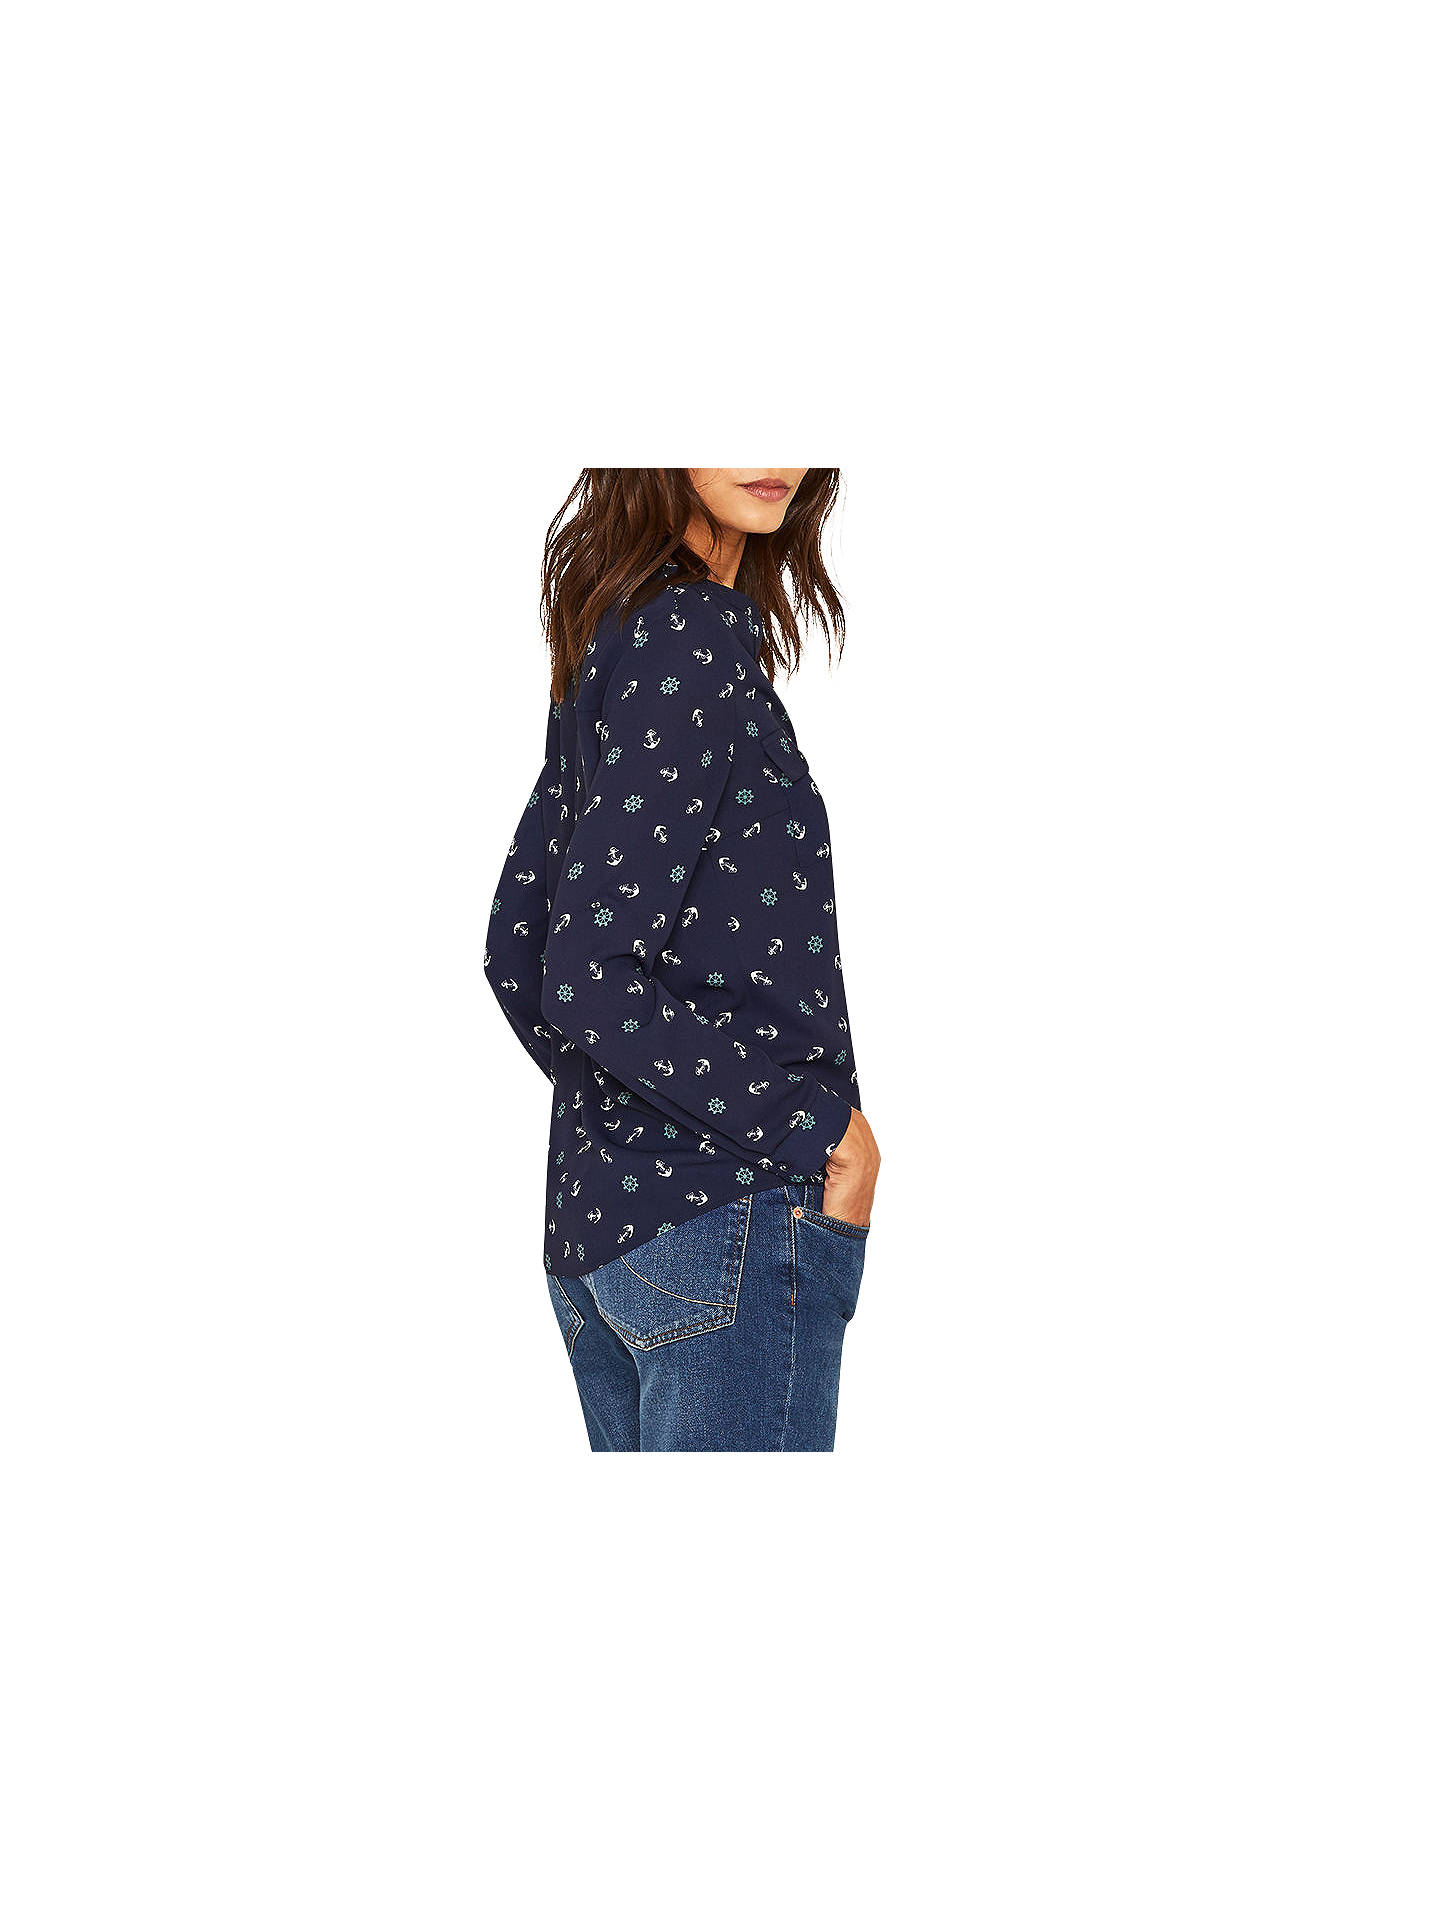 aedf3150582f ... Buy Oasis Anchor Print Shirt, Blue/Multi, 6 Online at johnlewis.com ...